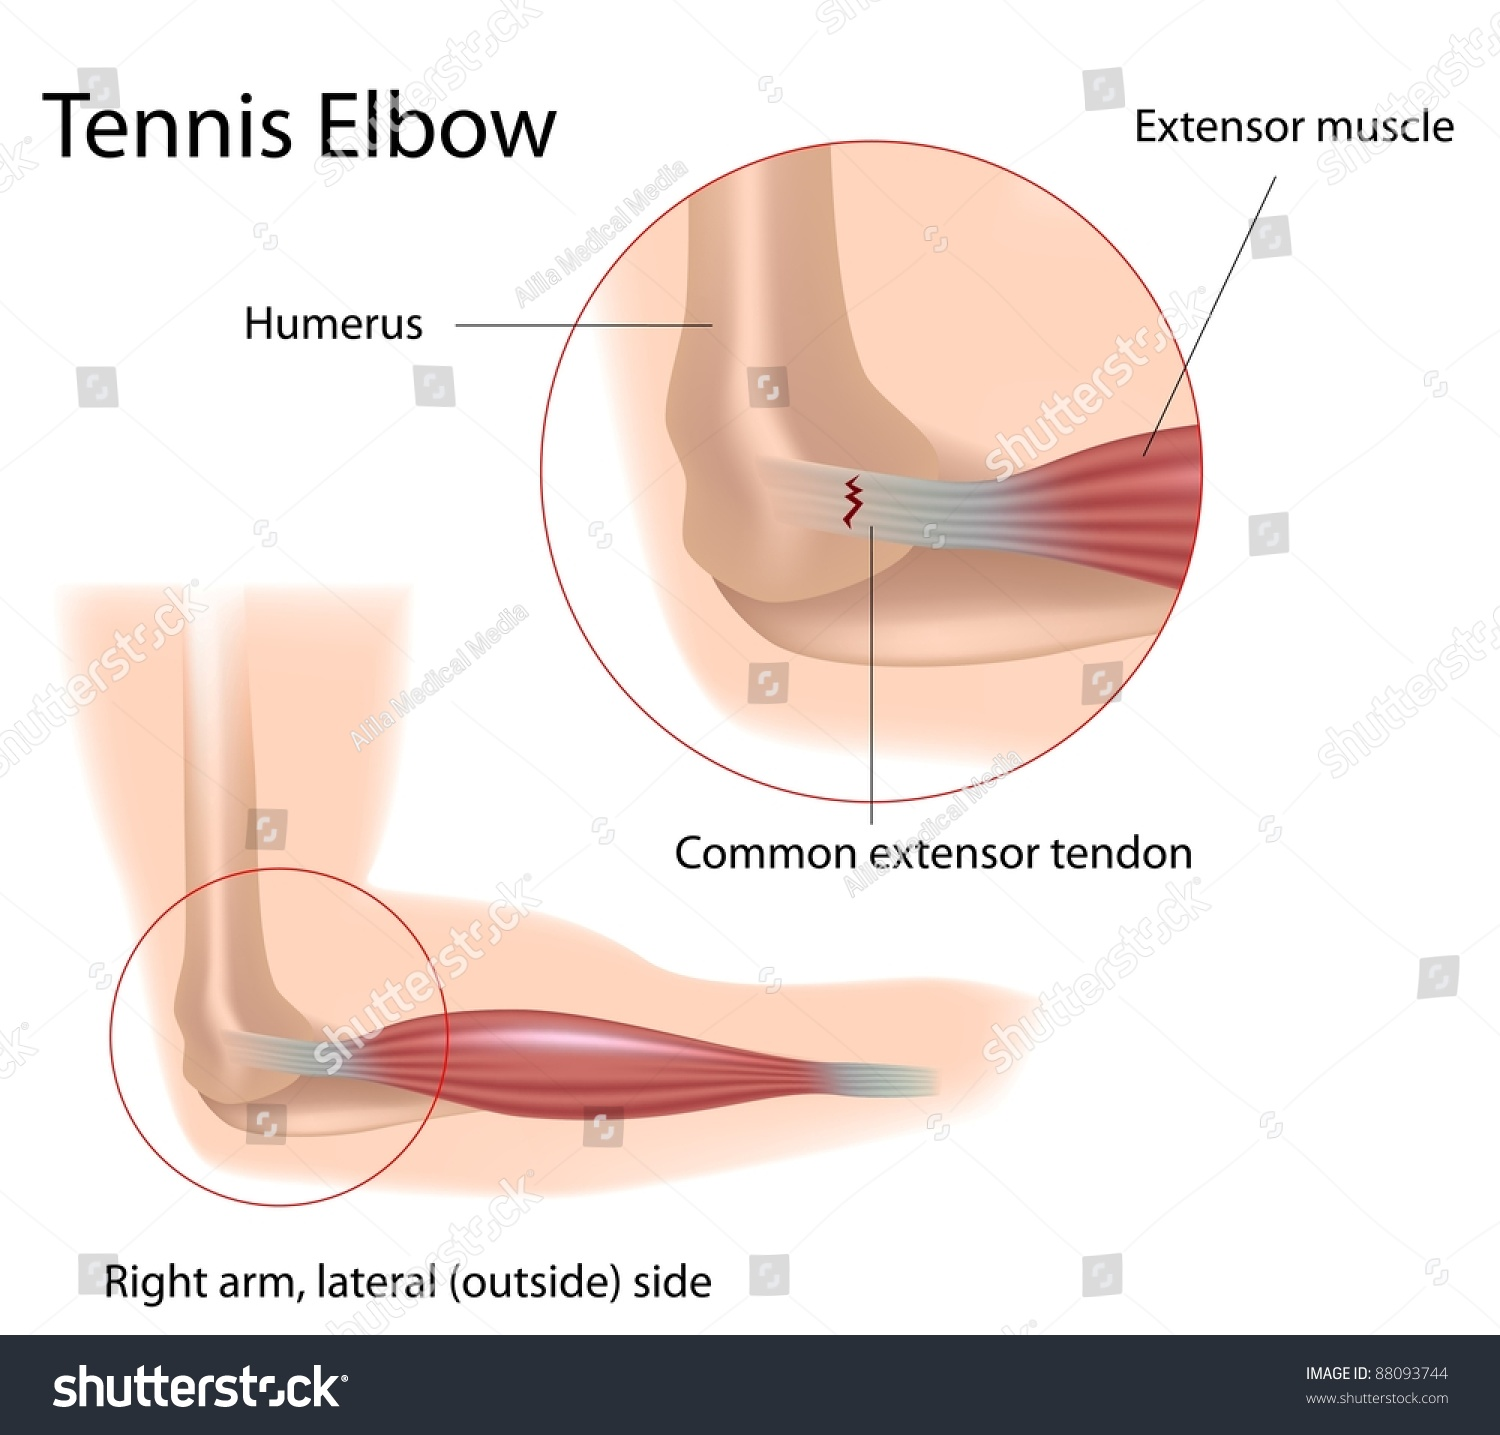 Tennis Elbow Tear Common Extensor Tendon Stock Illustration 88093744